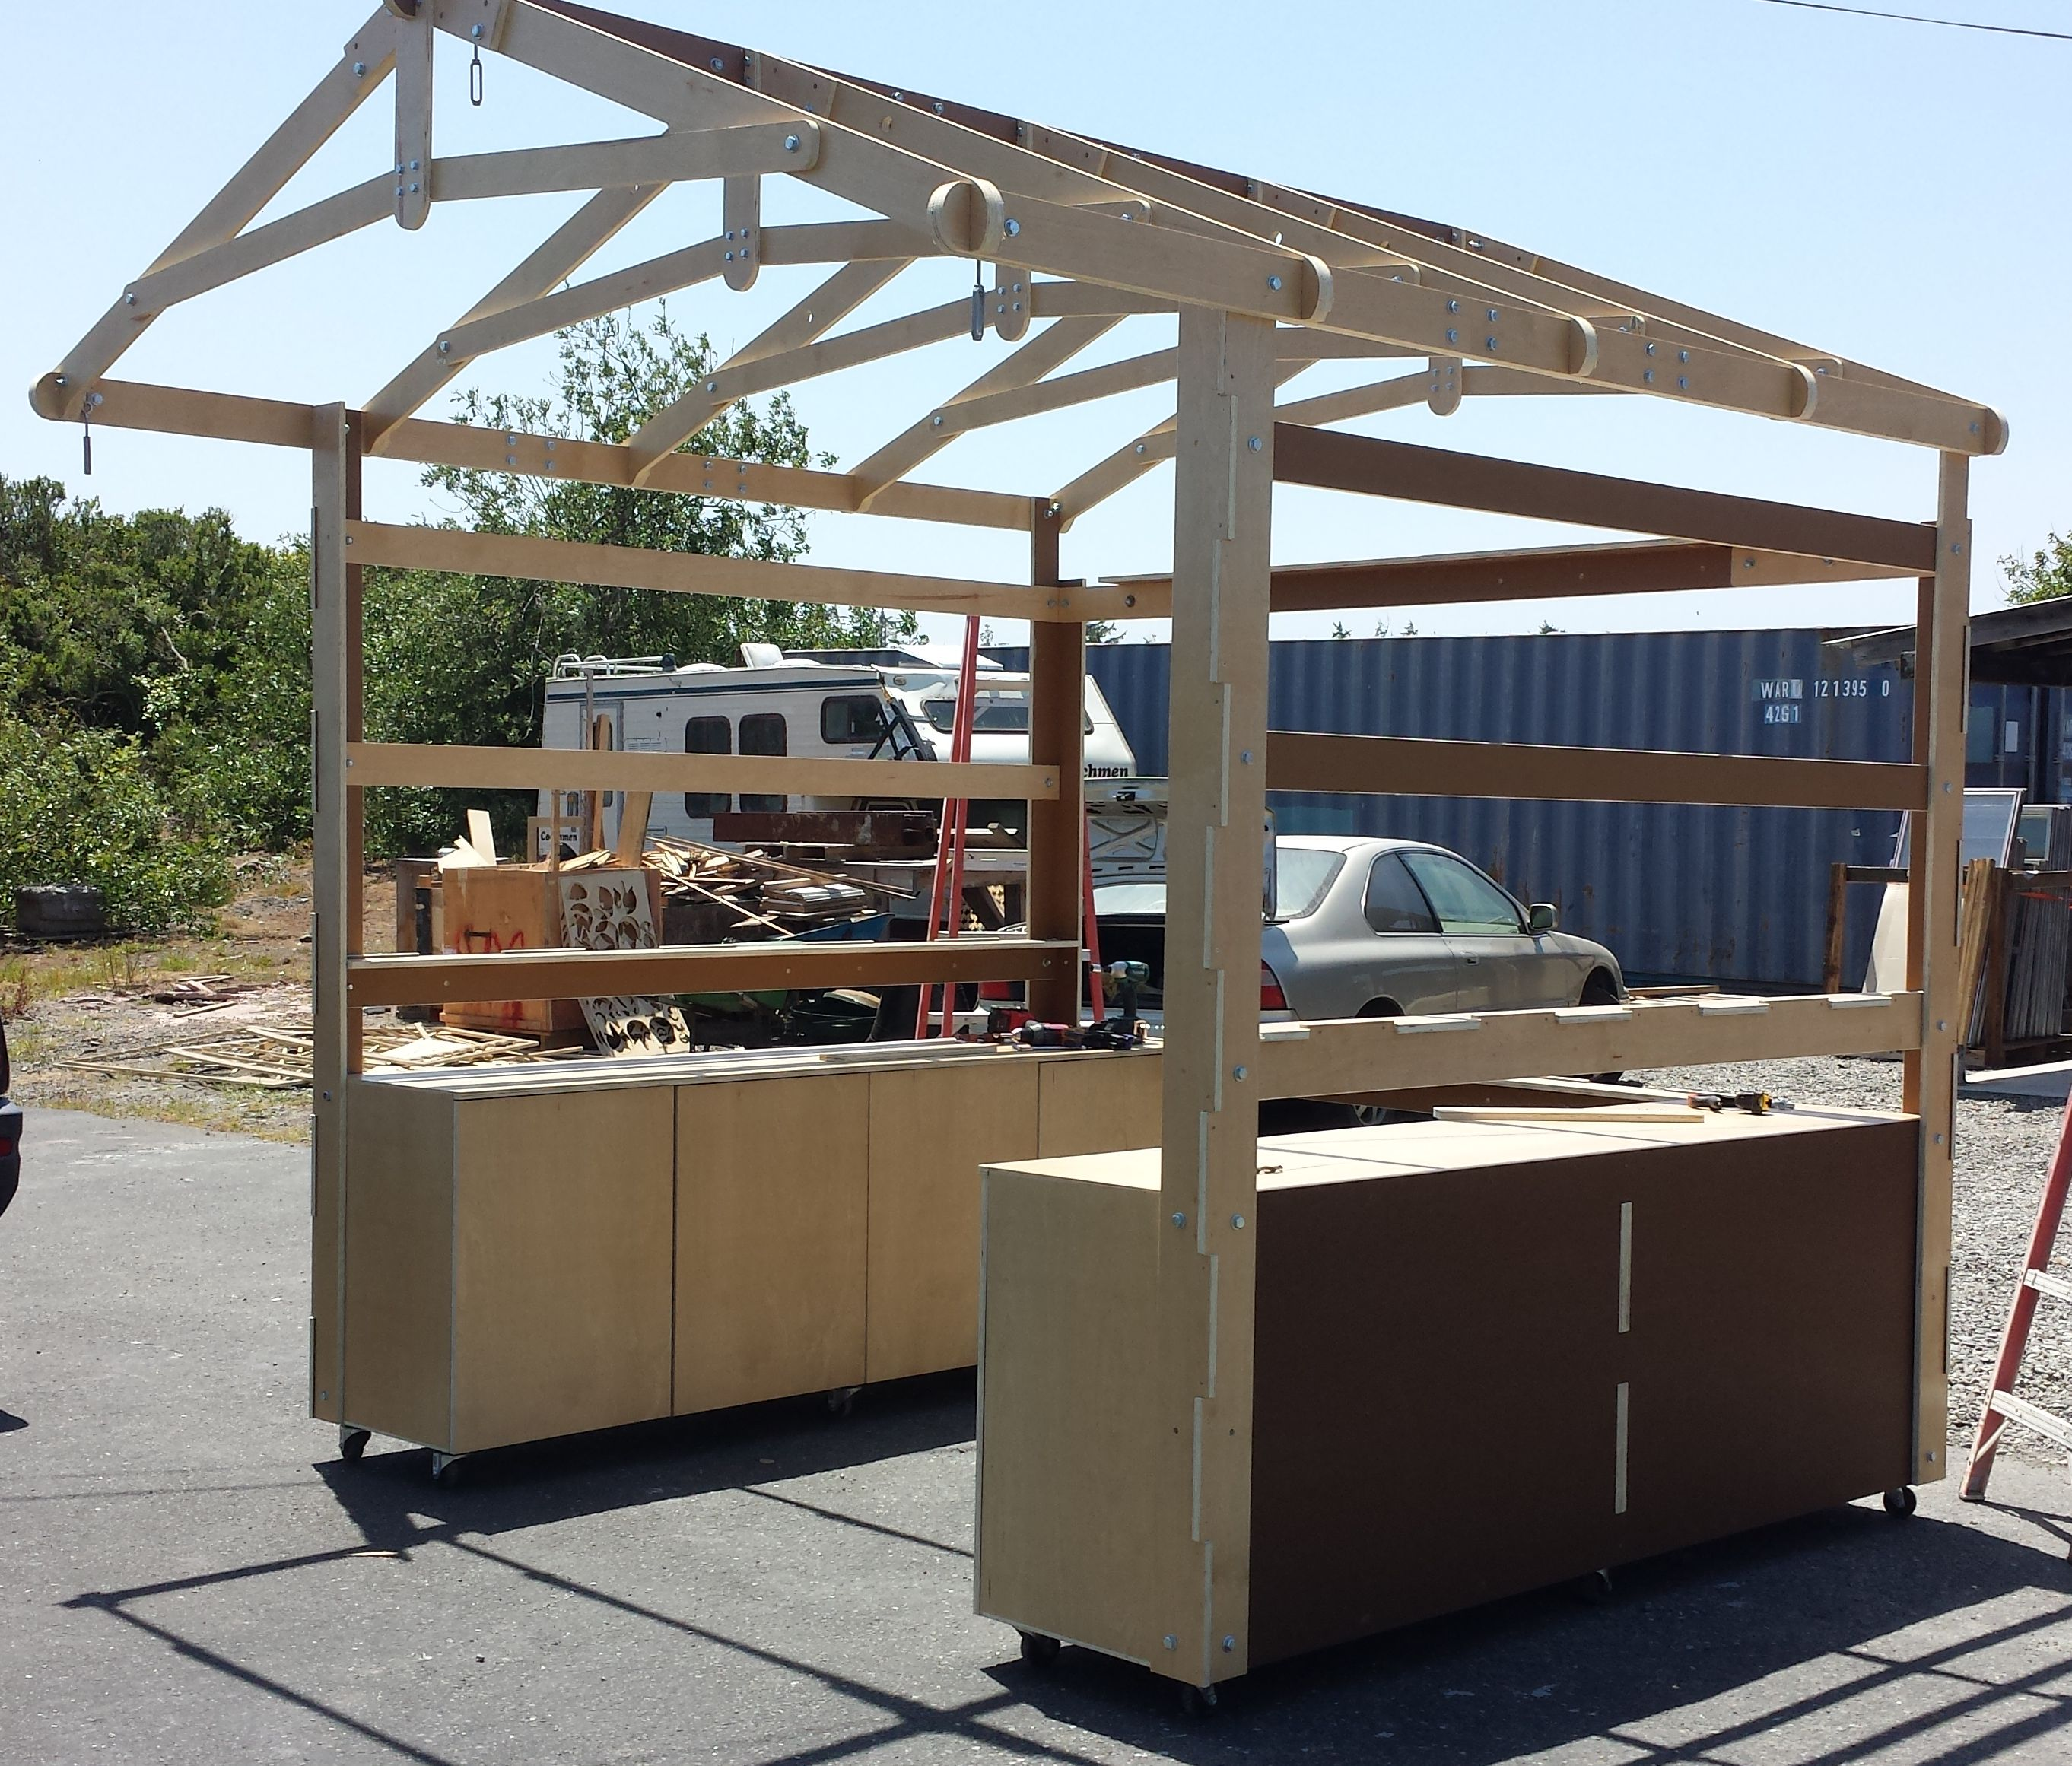 Bolt Together Wooden Craft Fair Booth Construction